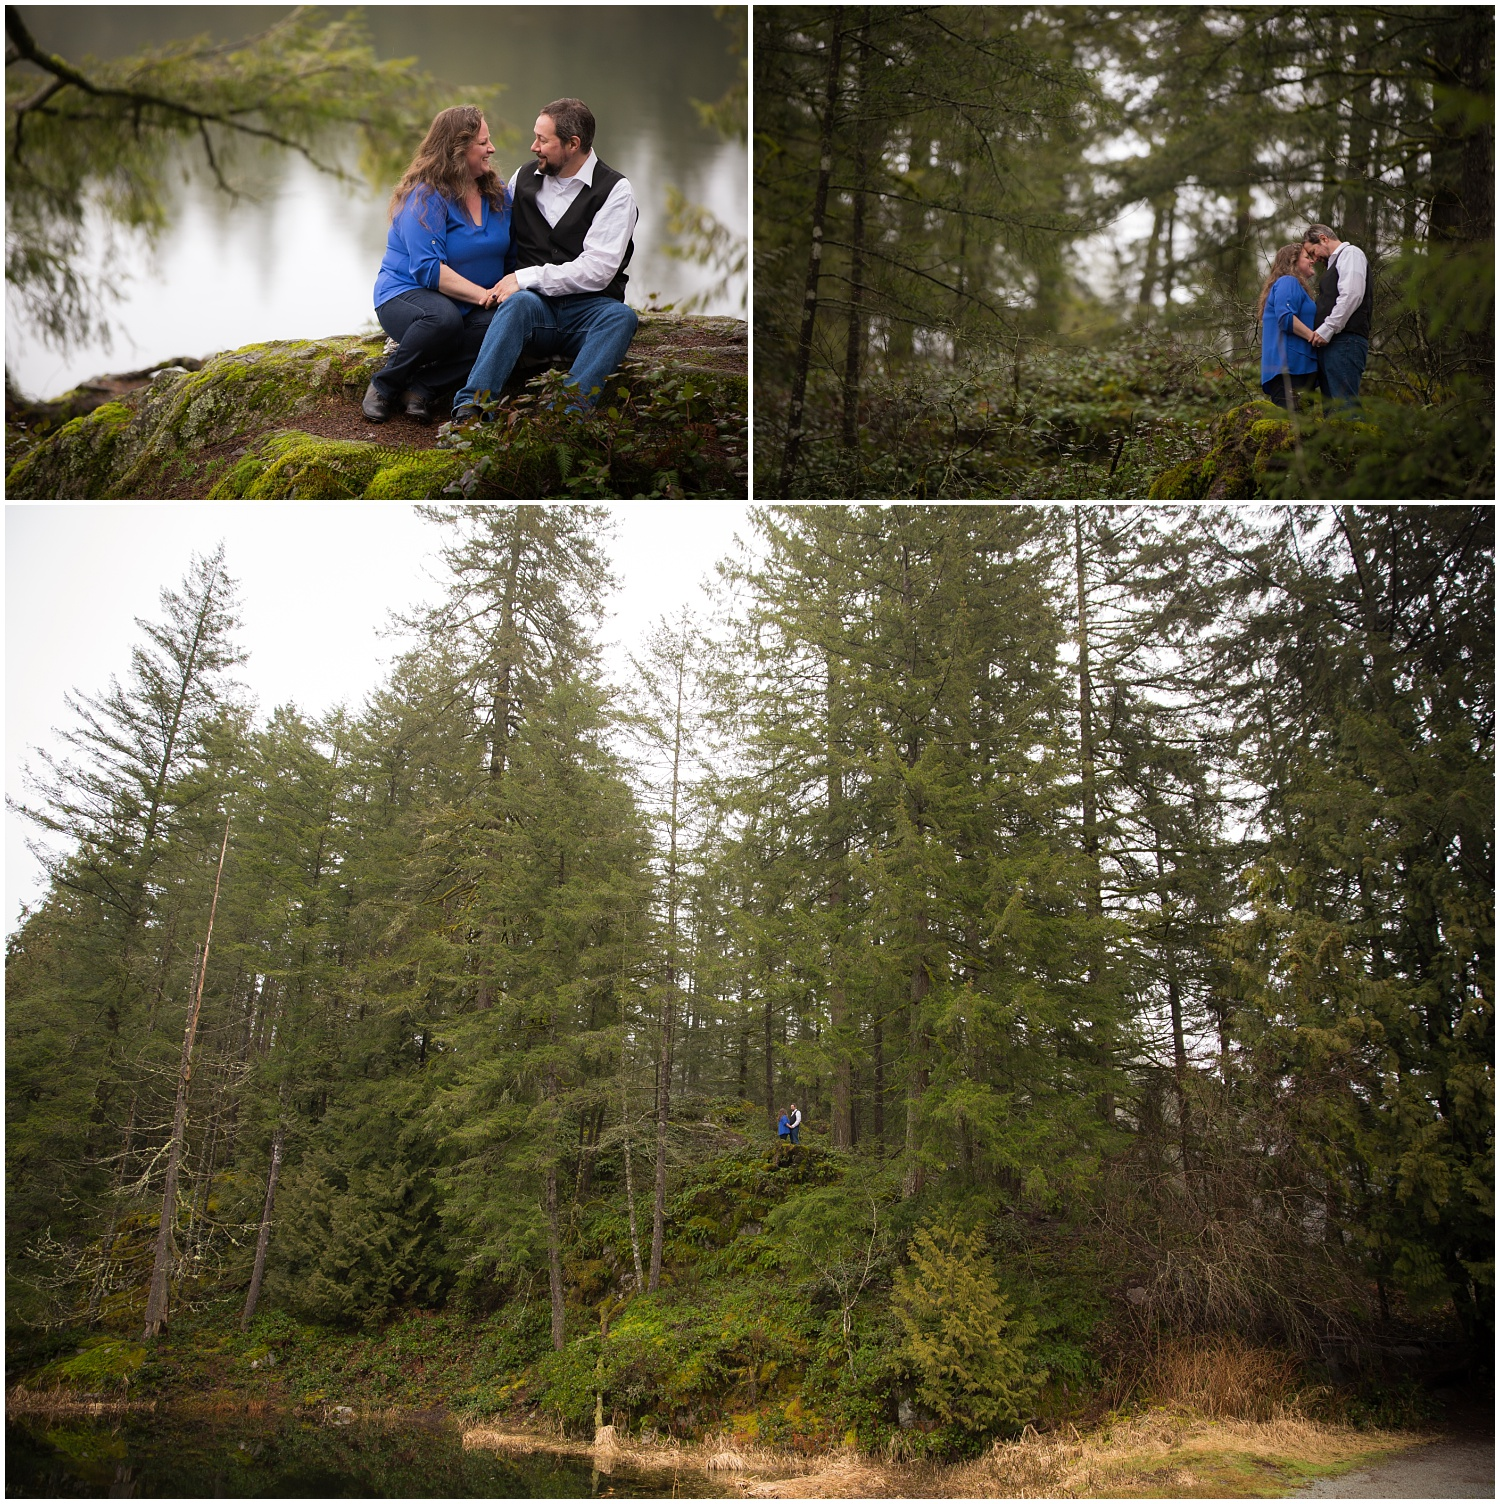 Amazing Day Photography - Minnekhada Engagment Session - Langley Engagement Photographer - Langley Wedding Photographer - Coquitlam Engagement Session (7).jpg